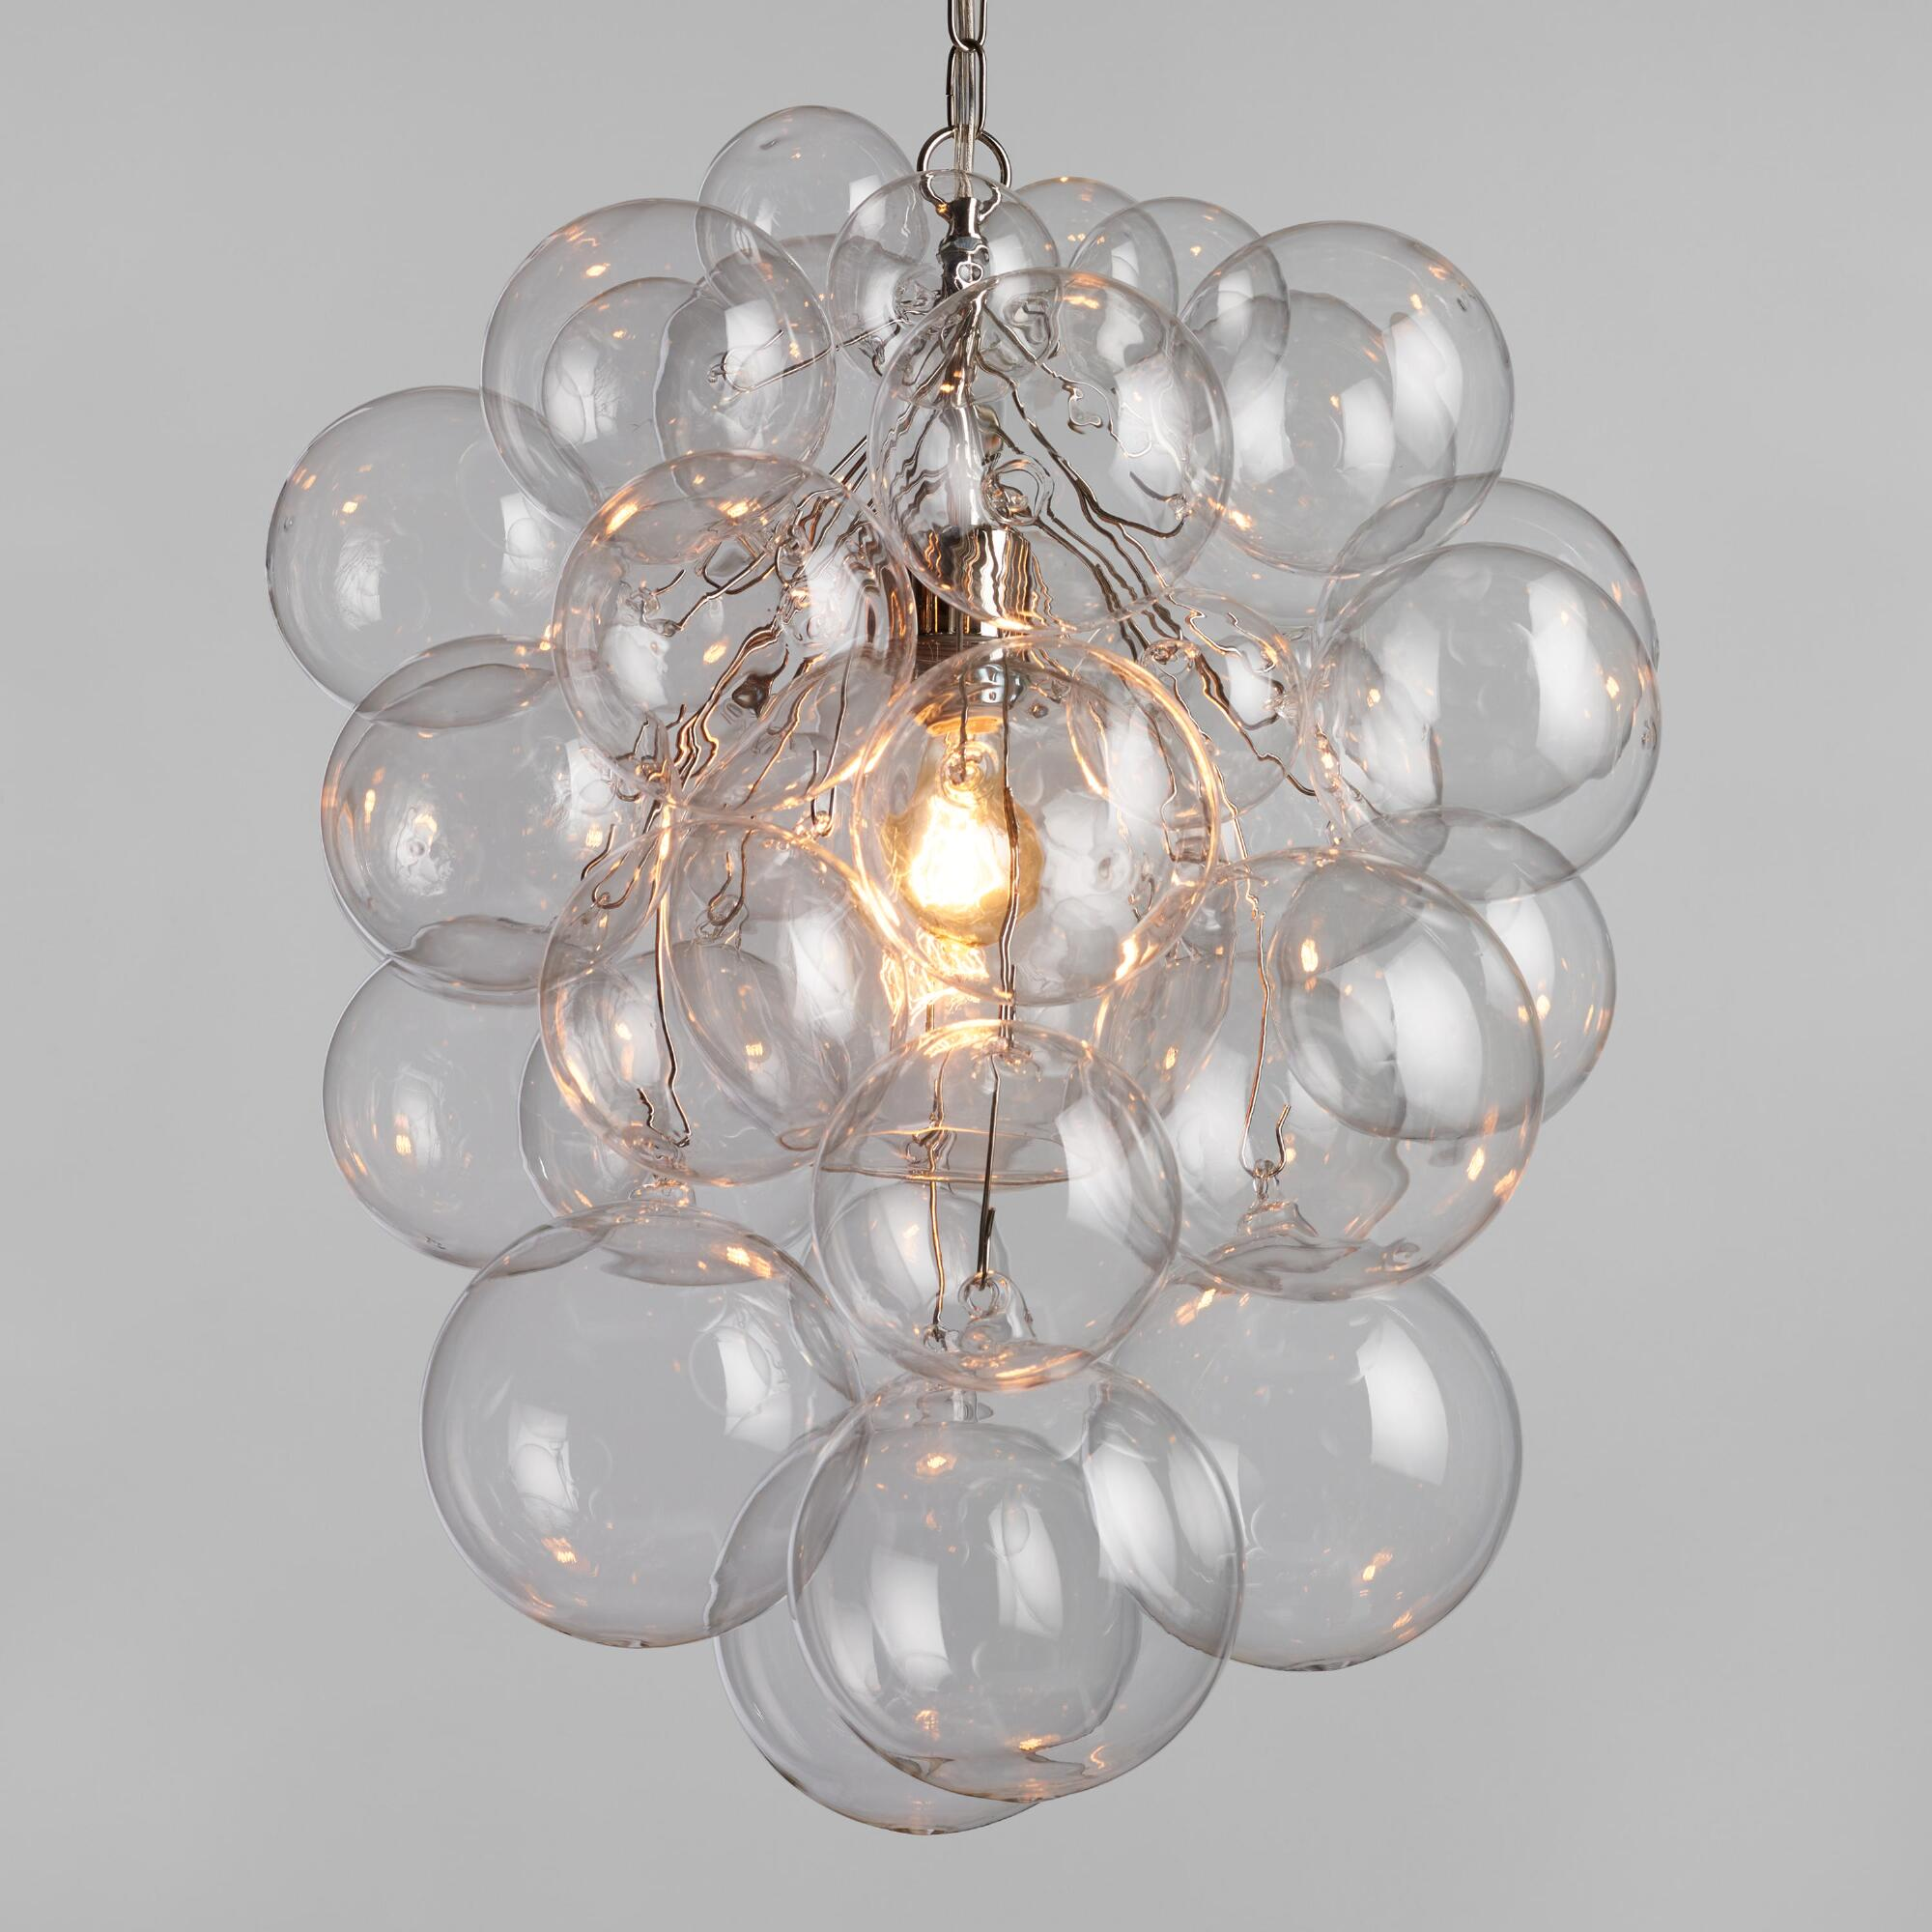 White washed wood sphere chandelier chandeliers by shades of light - Bubble Glass Orb Chandelier